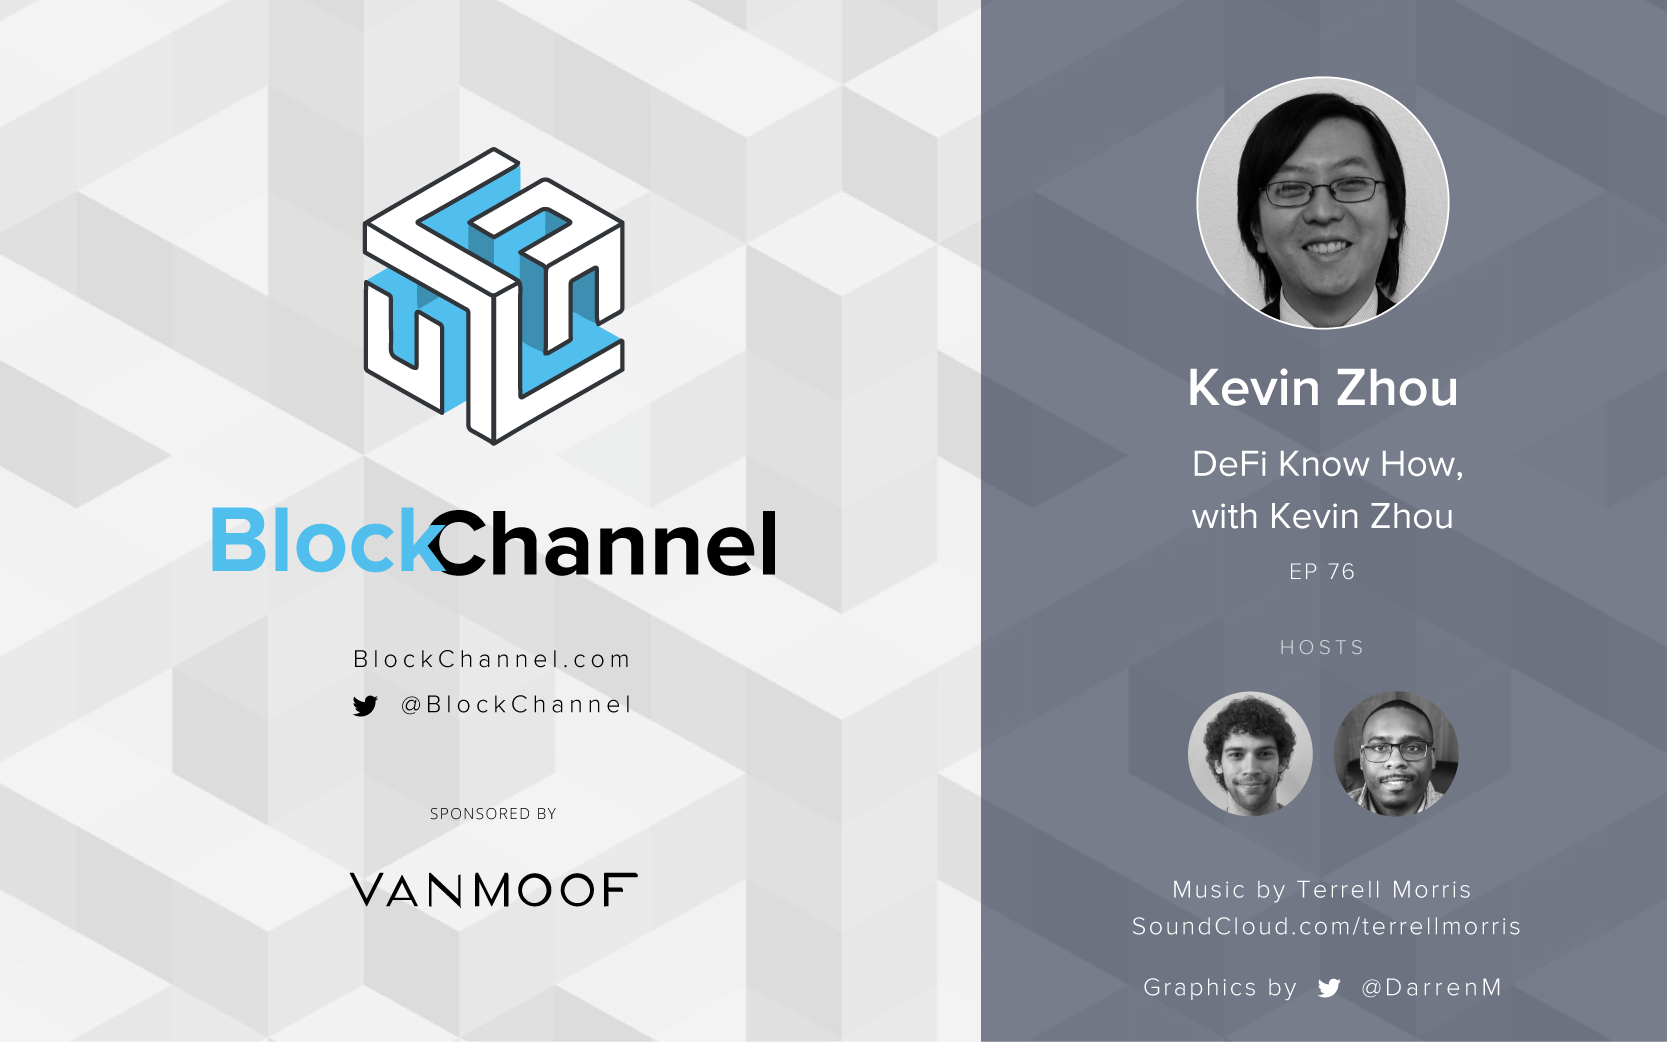 Episode 76: DeFi Know How, with Kevin Zhou